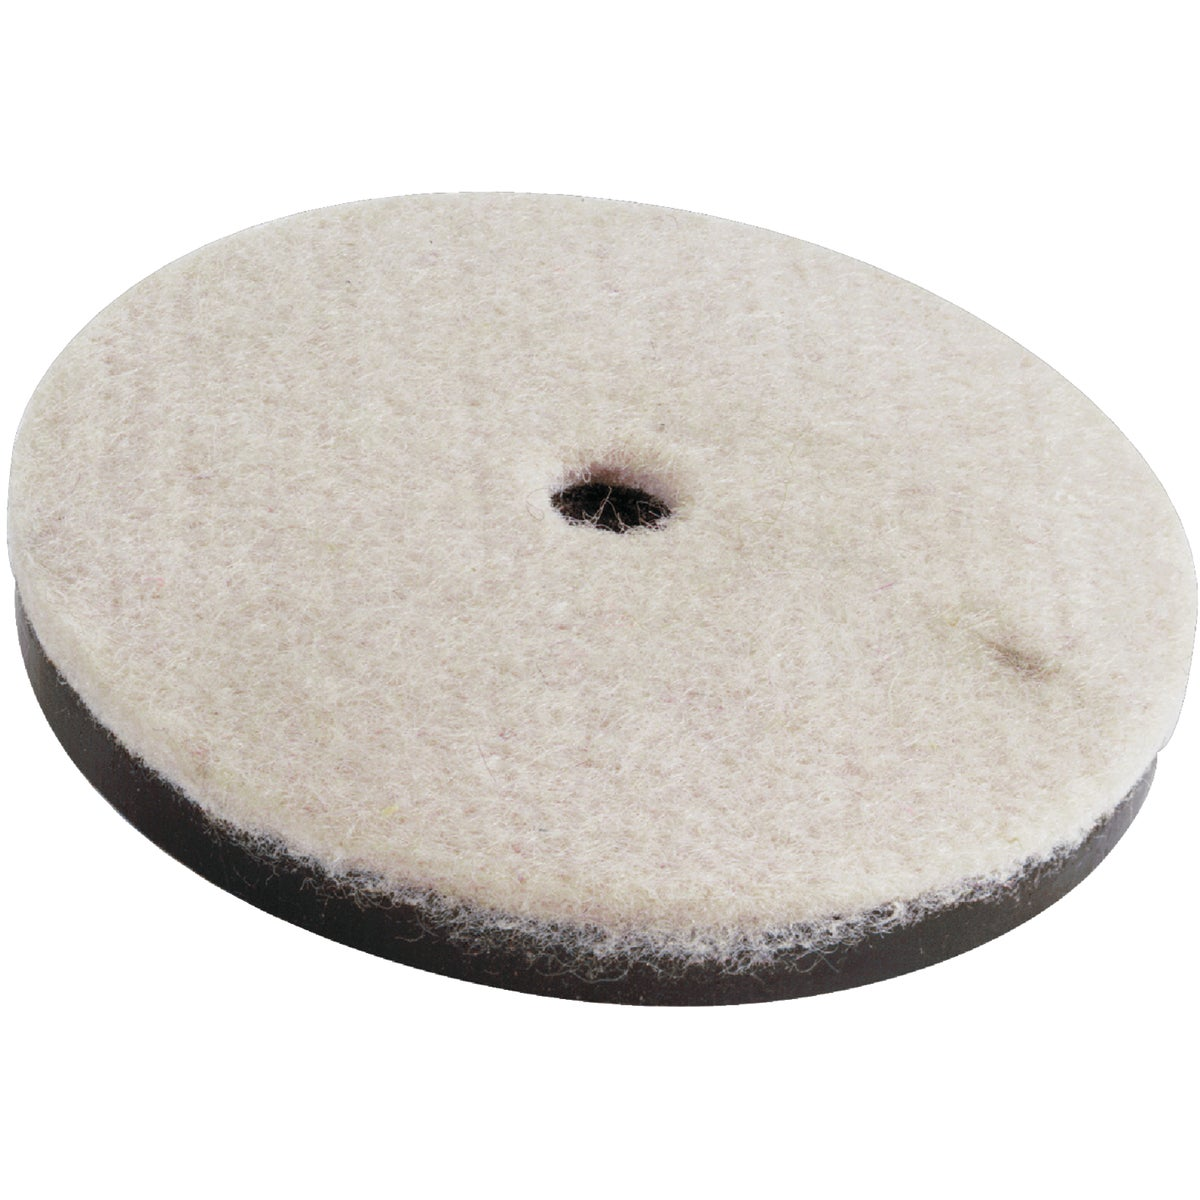 "2"" ROUND FELT CASTER CUP - 235962 by Shepherd Hardware"